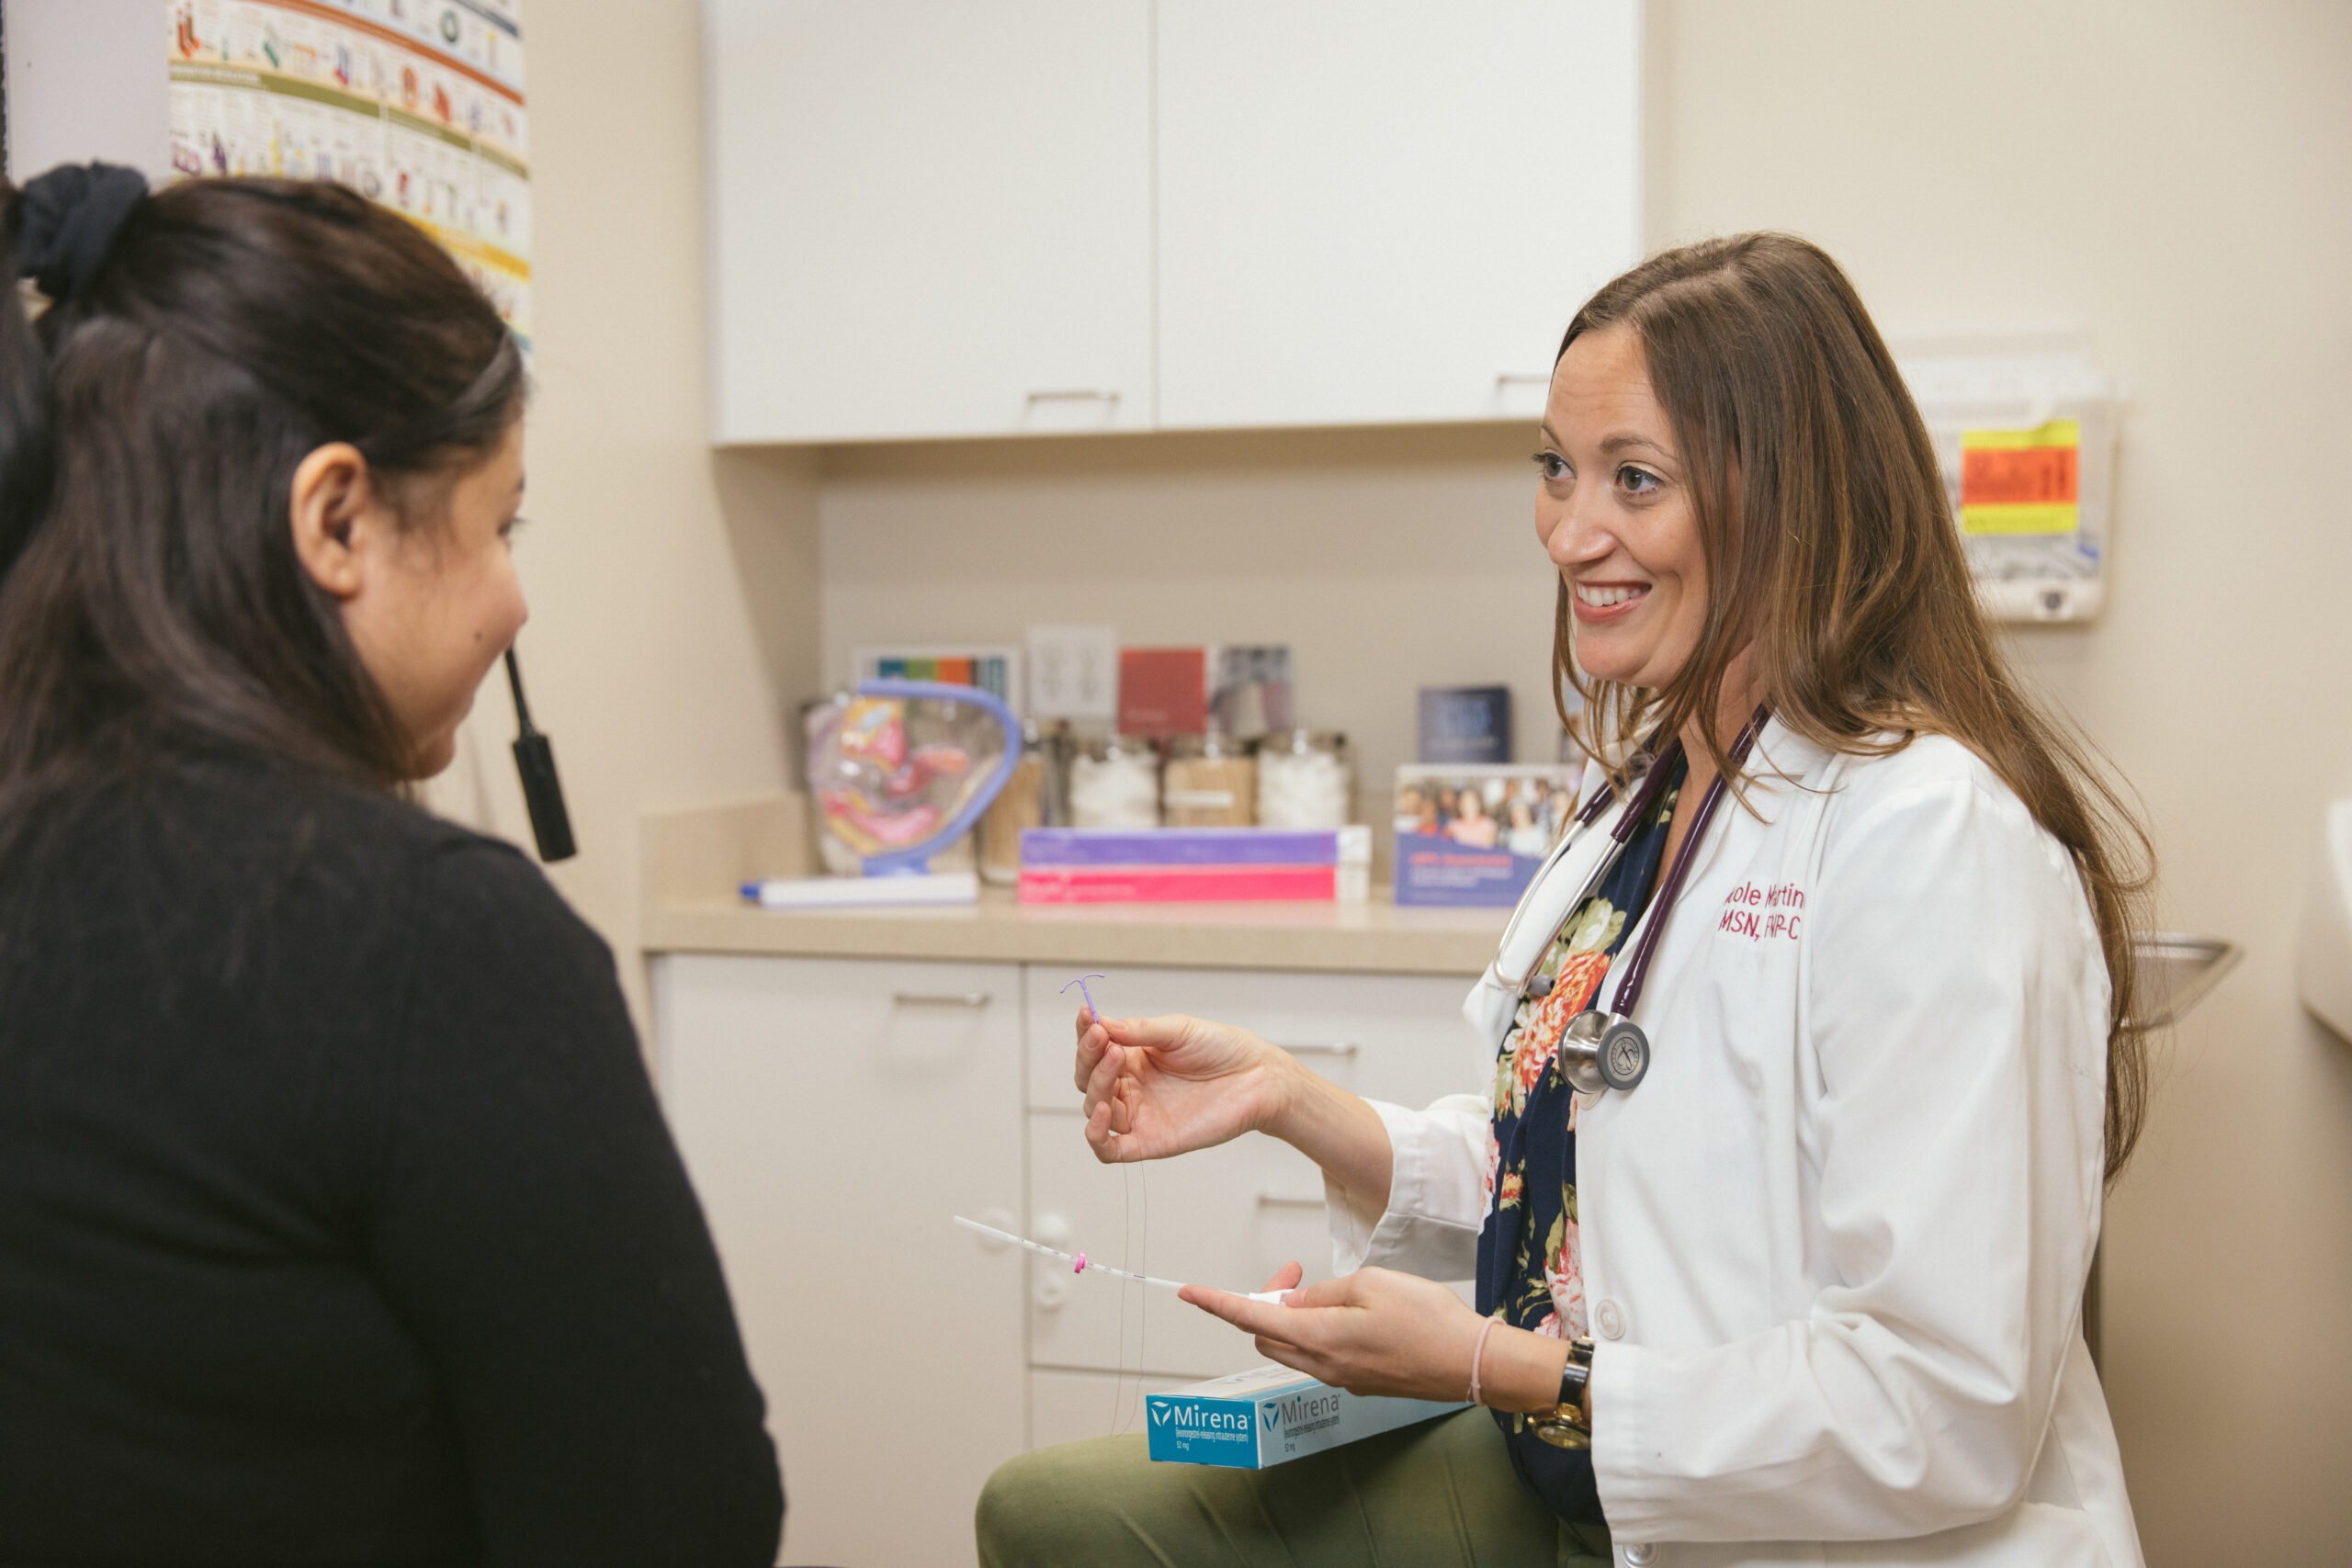 Nurse Practitioner Nicole Martinez, of the Santa Barbara Neighborhood Clinics, speaks with a patient in Goleta, California, on Friday, October 23, 2020. The Santa Barbara Neighborhood Clinics are among the hundreds of community health centers across the U.S. that received Bayer-donated IUDs to bolster reproductive health services for uninsured women. (Photo by Erin Feinblatt for Direct Relief)